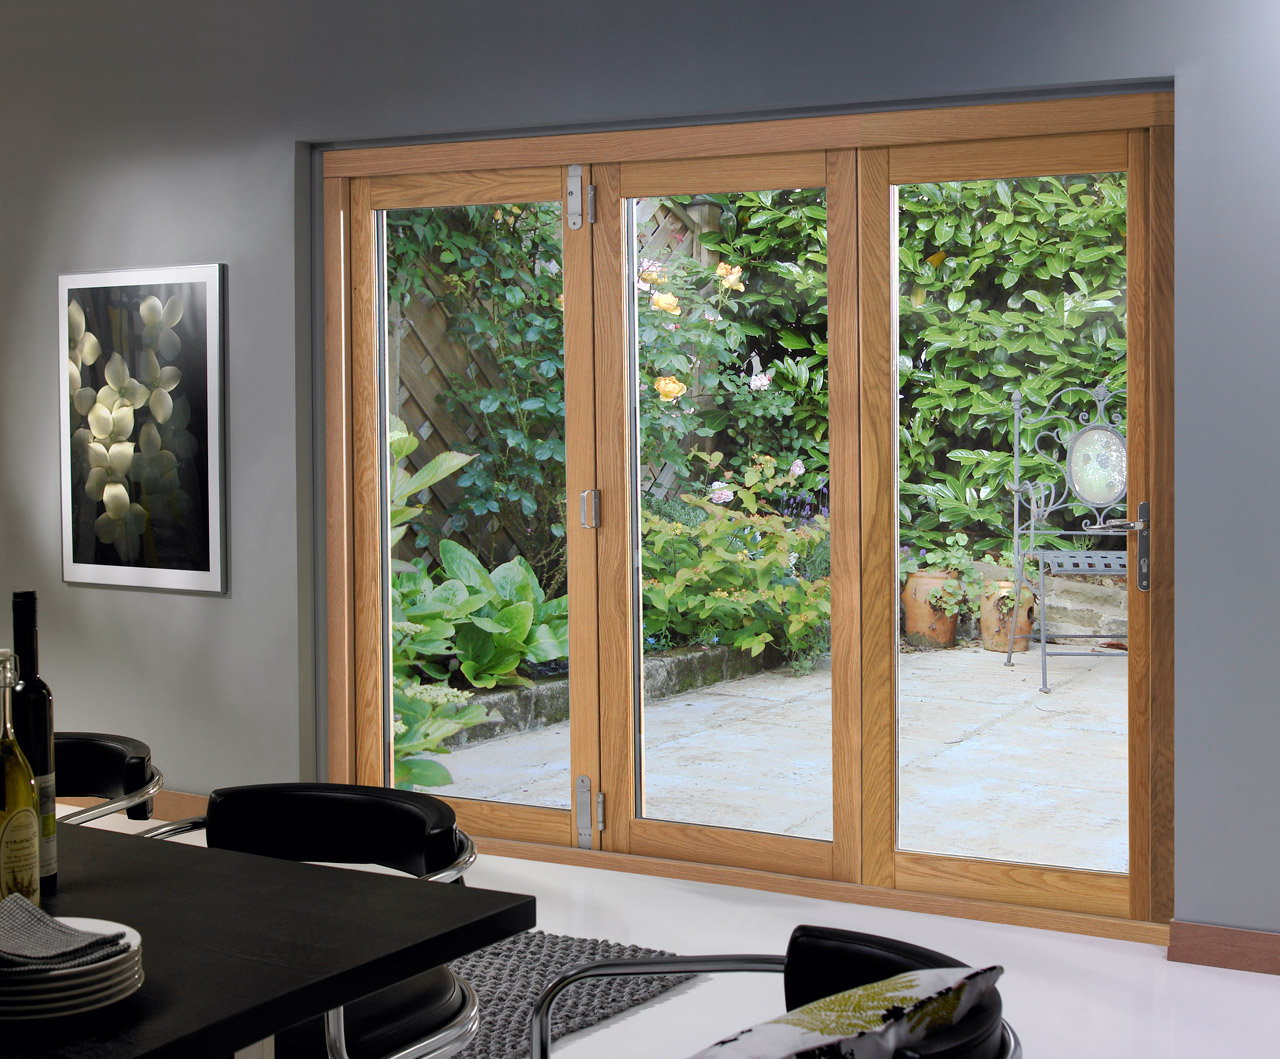 22 facts to know about 8 foot french doors exterior before for 8 foot exterior doors